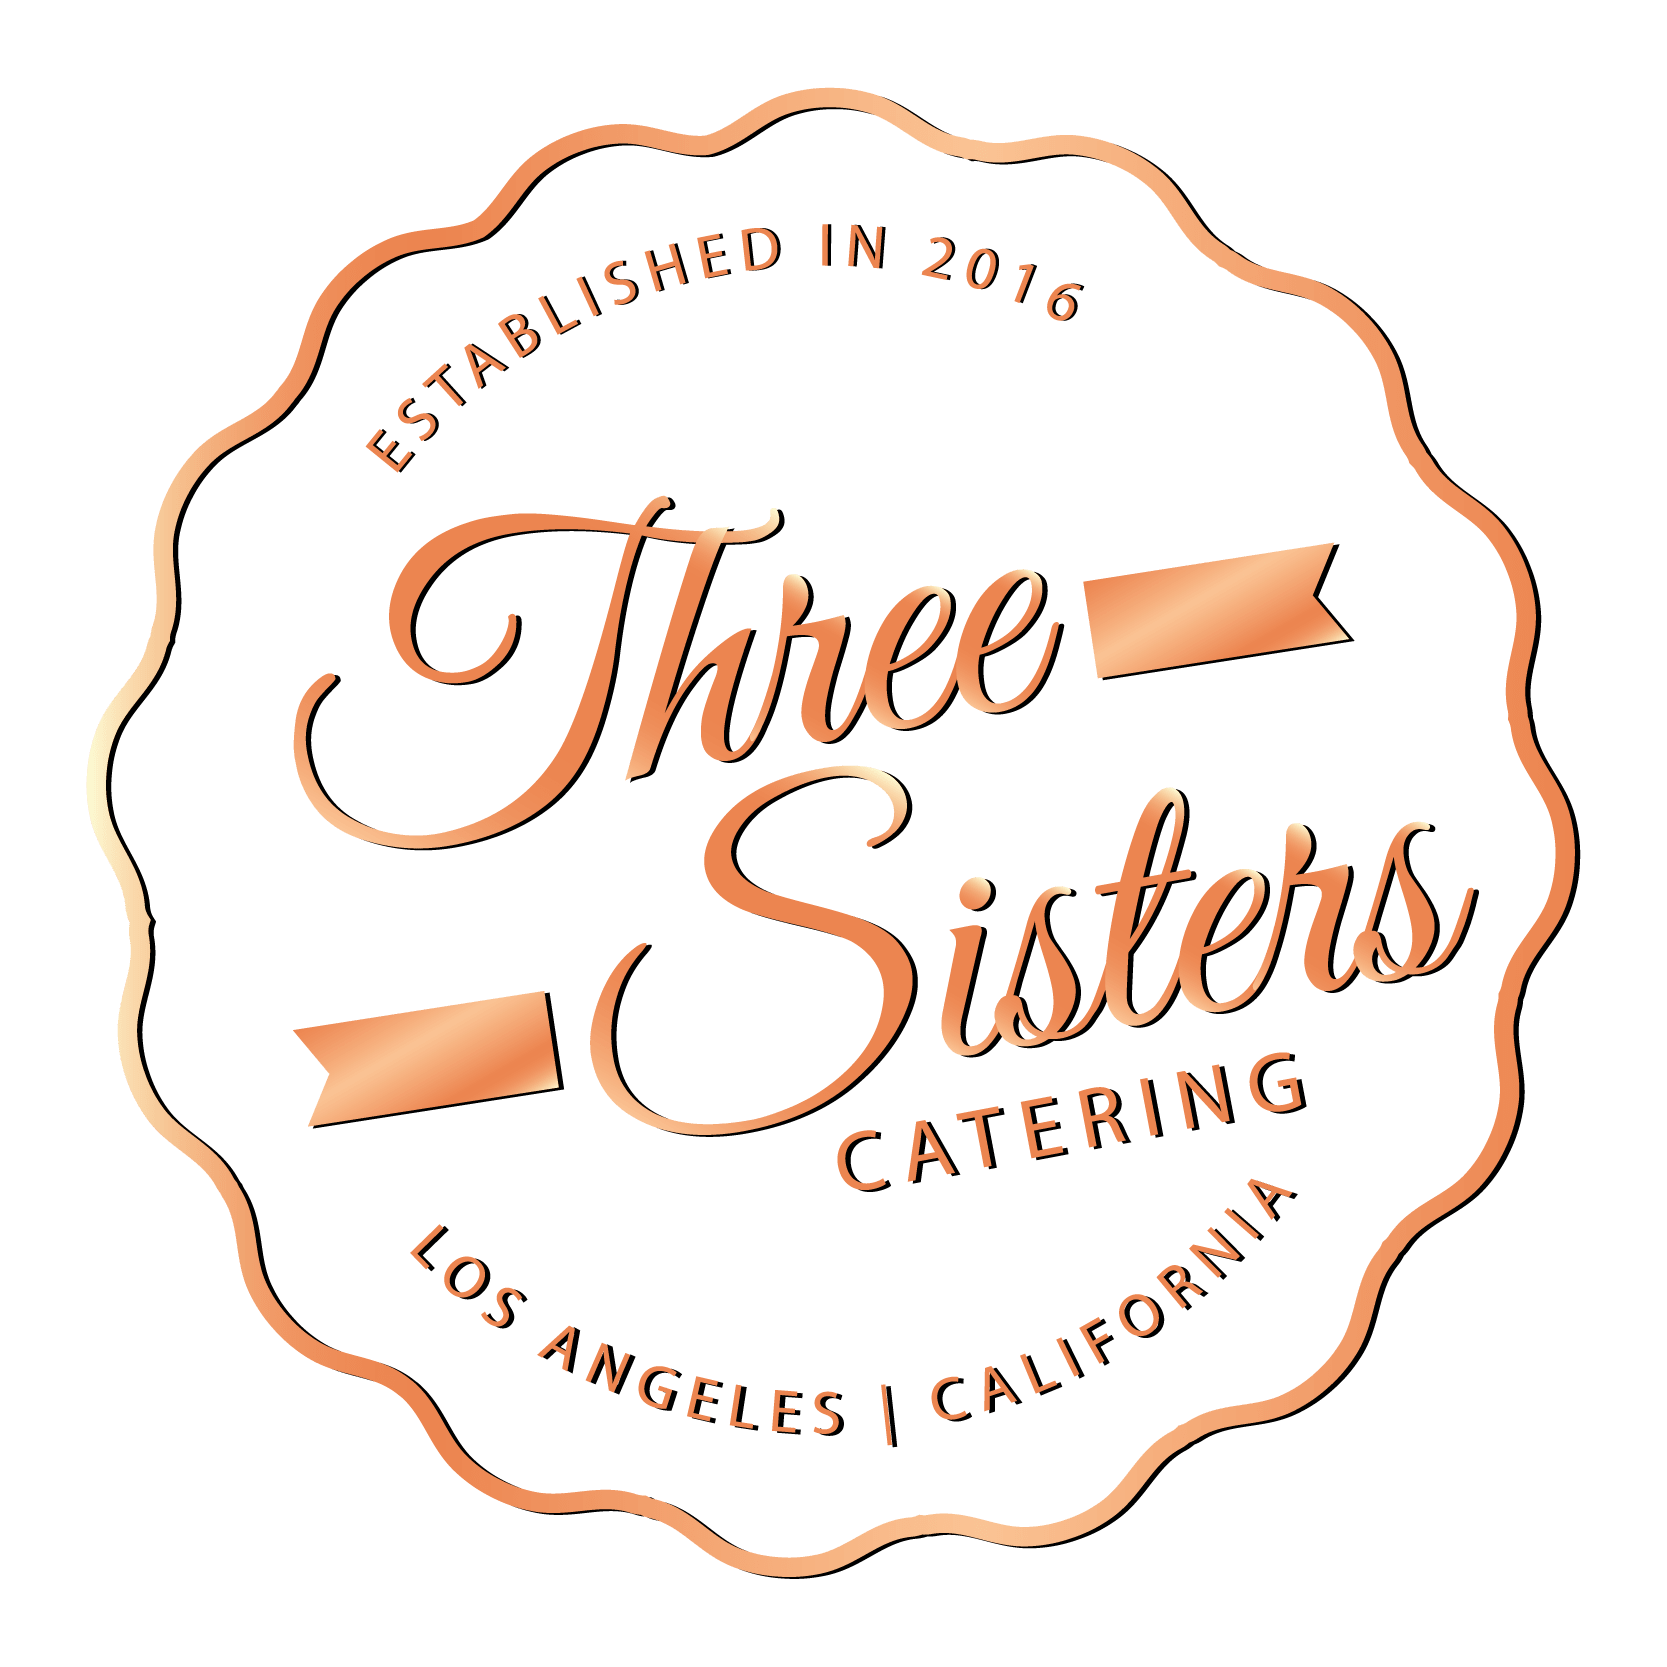 three sisters catering - los angeles california